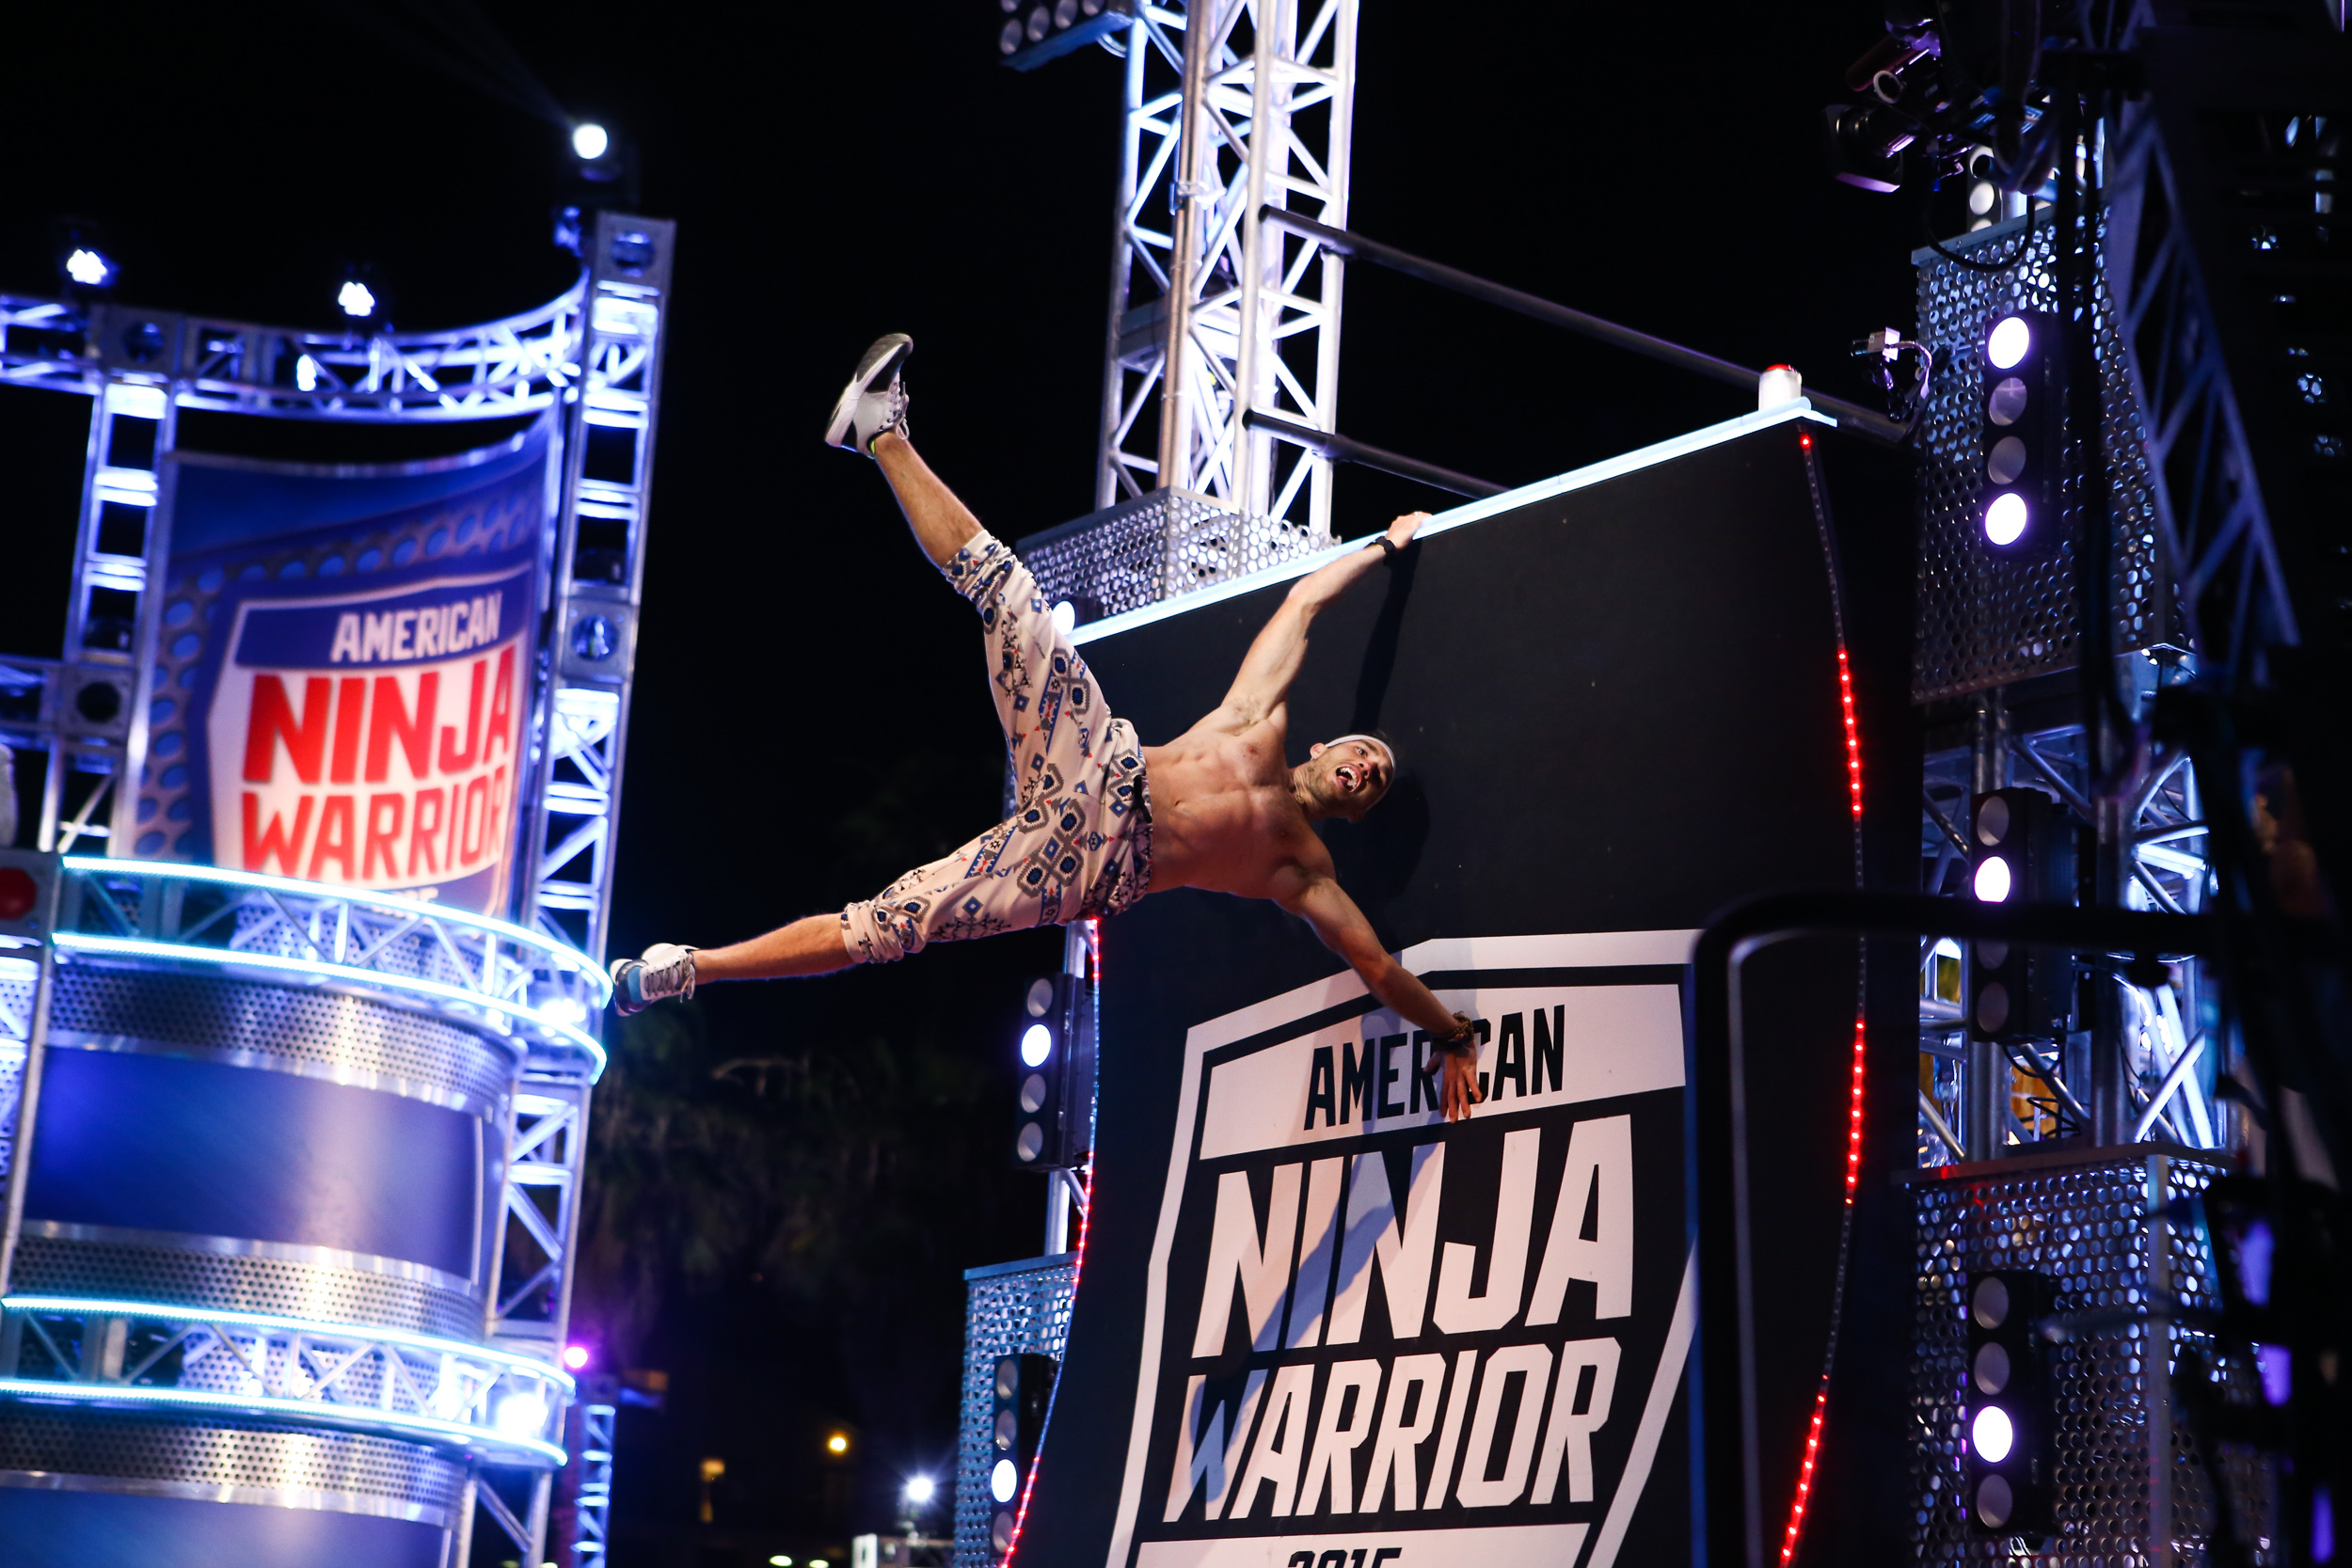 NBC's  American Ninja Warrior   | Season 7  Working as a behind the scenes and unit stills photographer, I photographed the athletes on the course and on the side lines to capture images for online and social media.